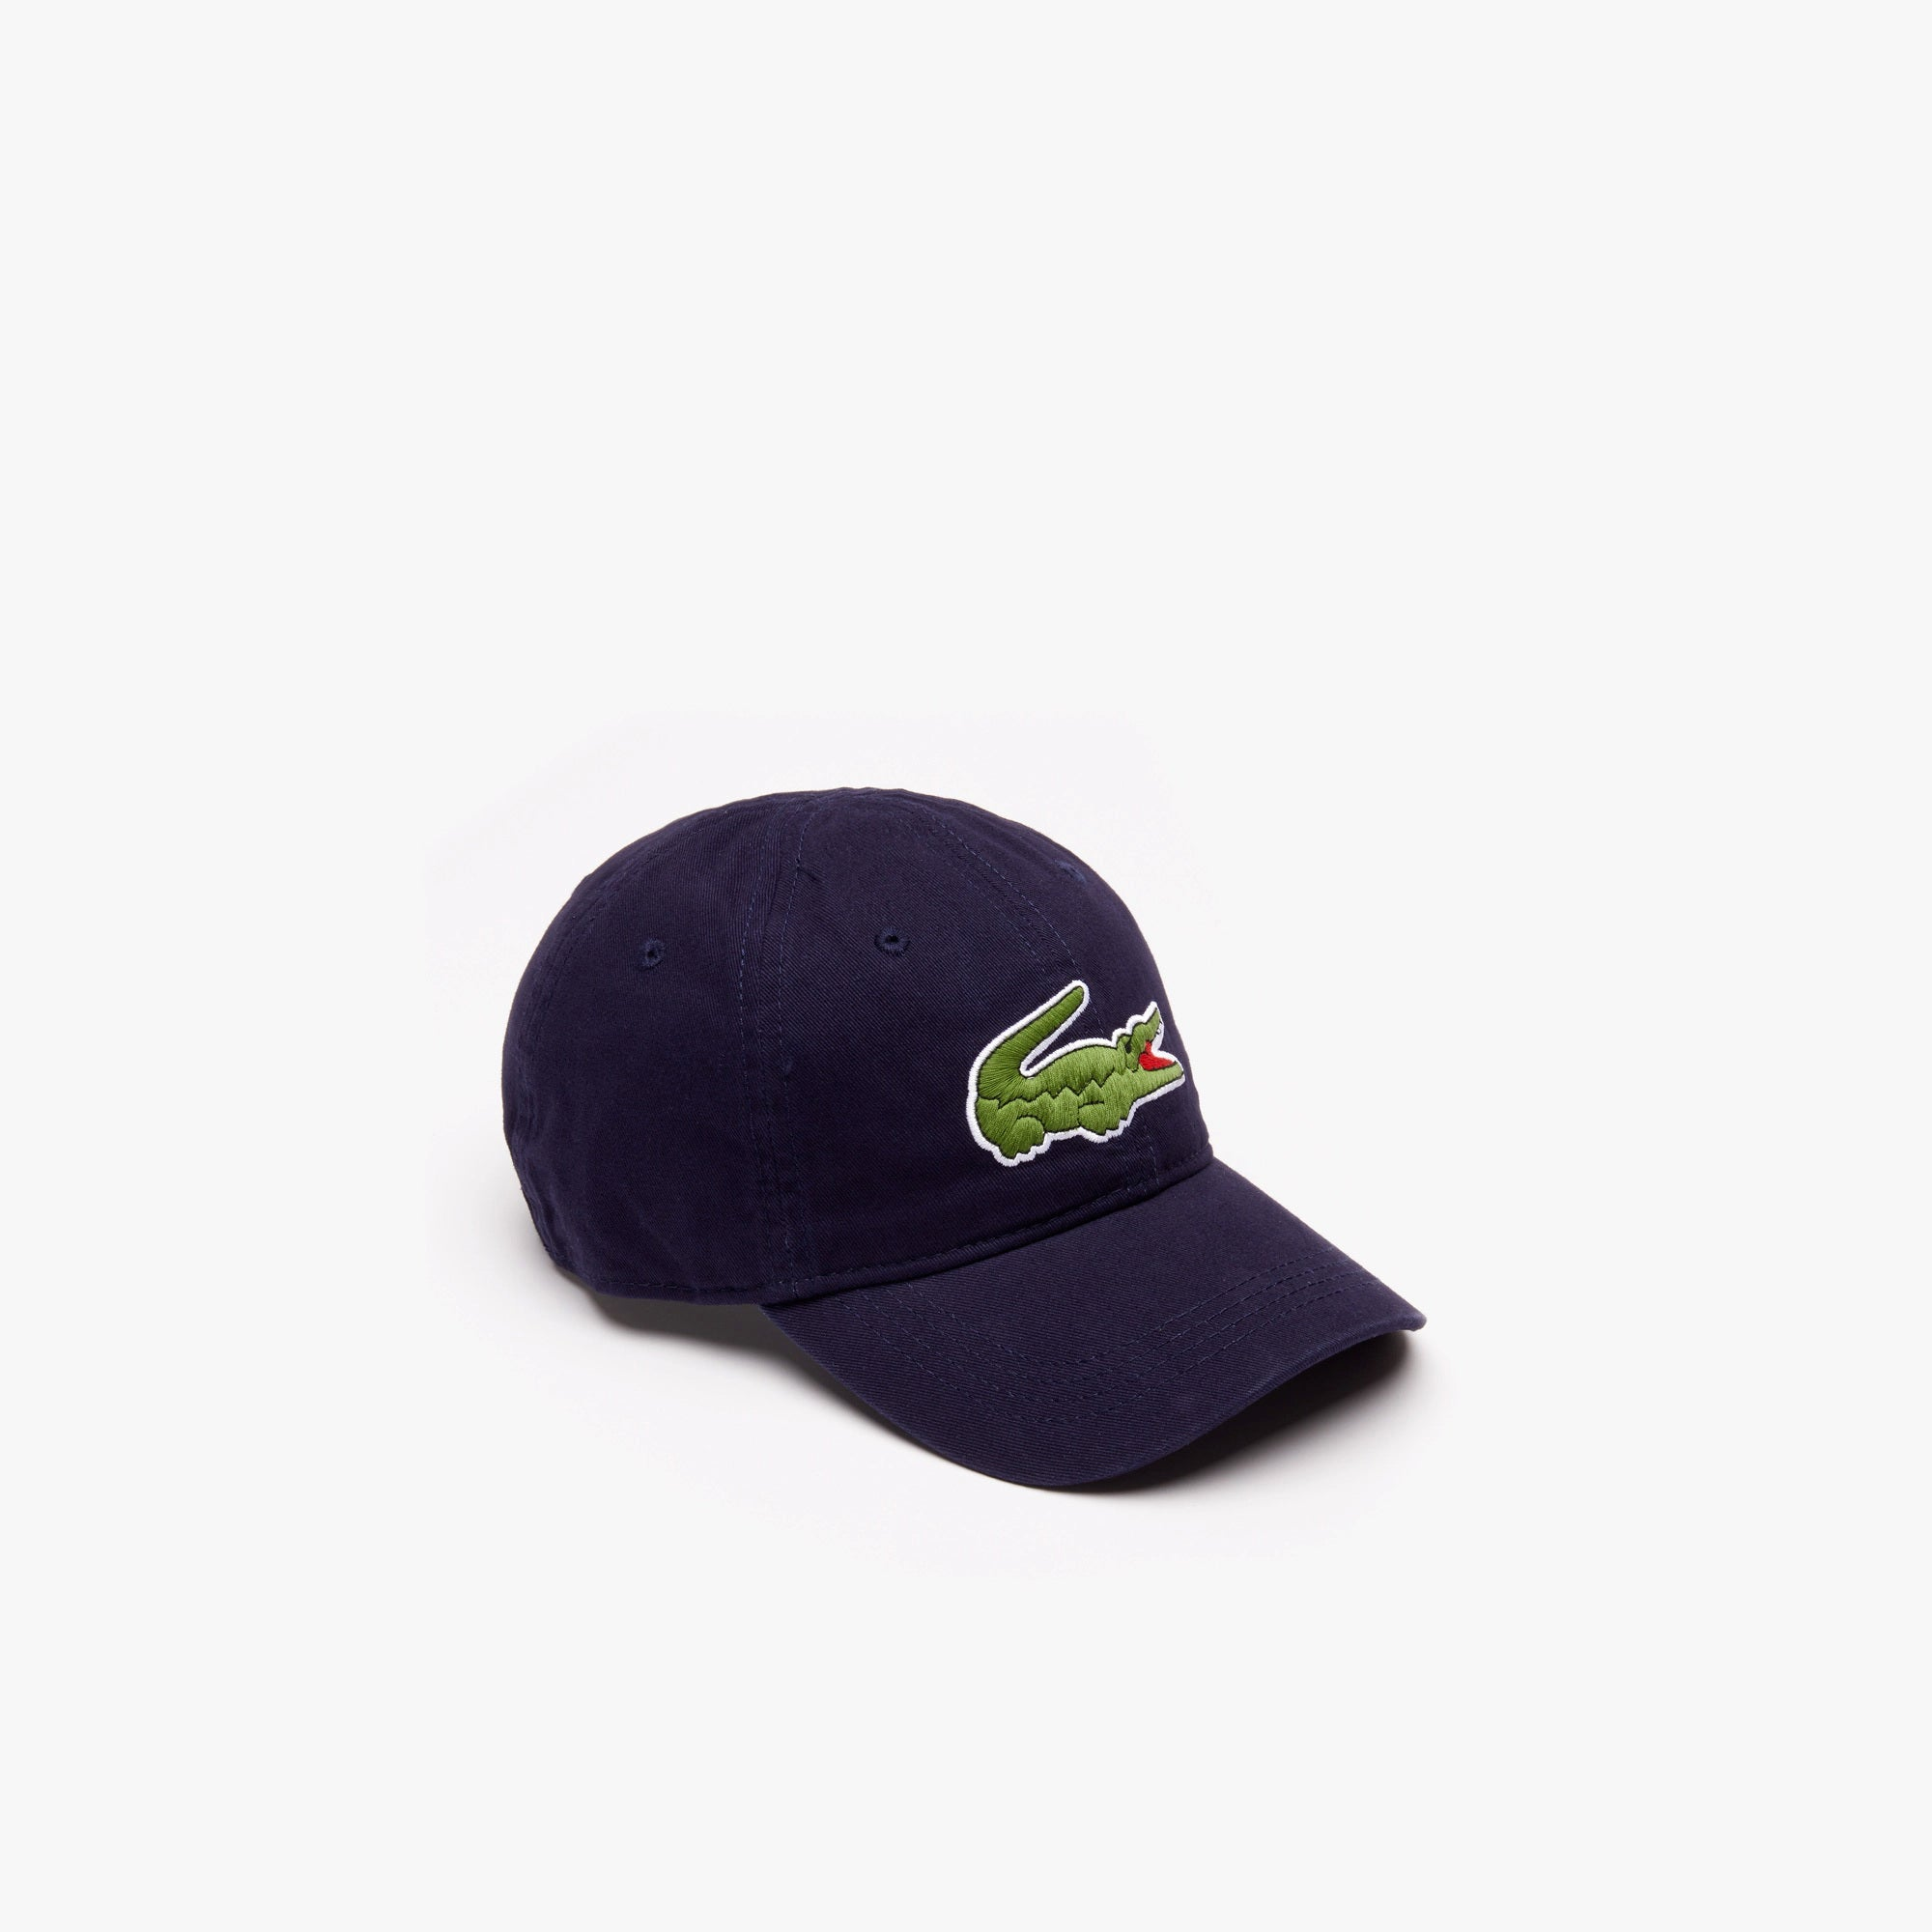 Lacoste CAPS AND HATS Navy Blue RK8217-51-166